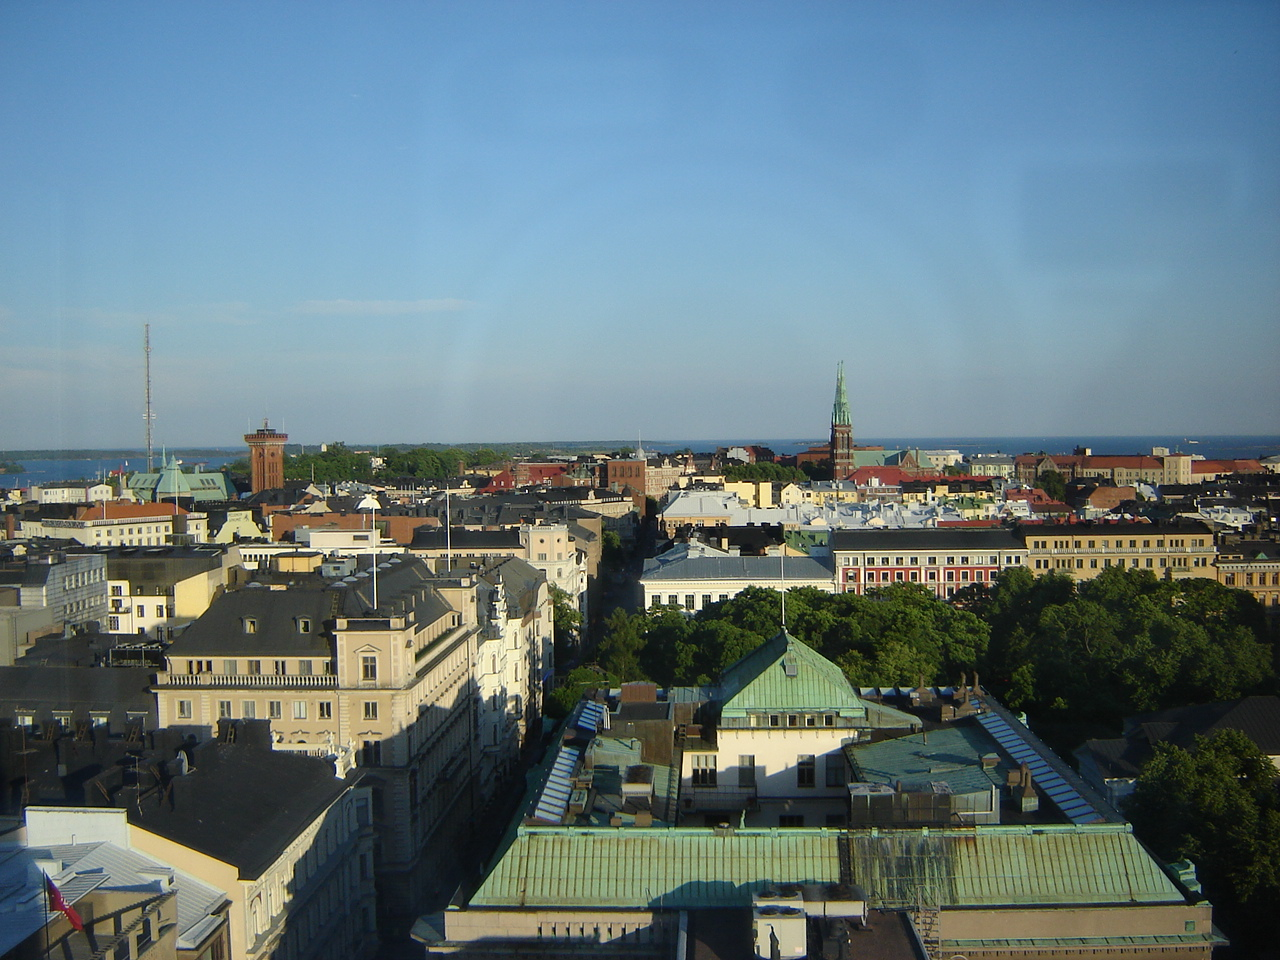 Helsinki from the viewpoint